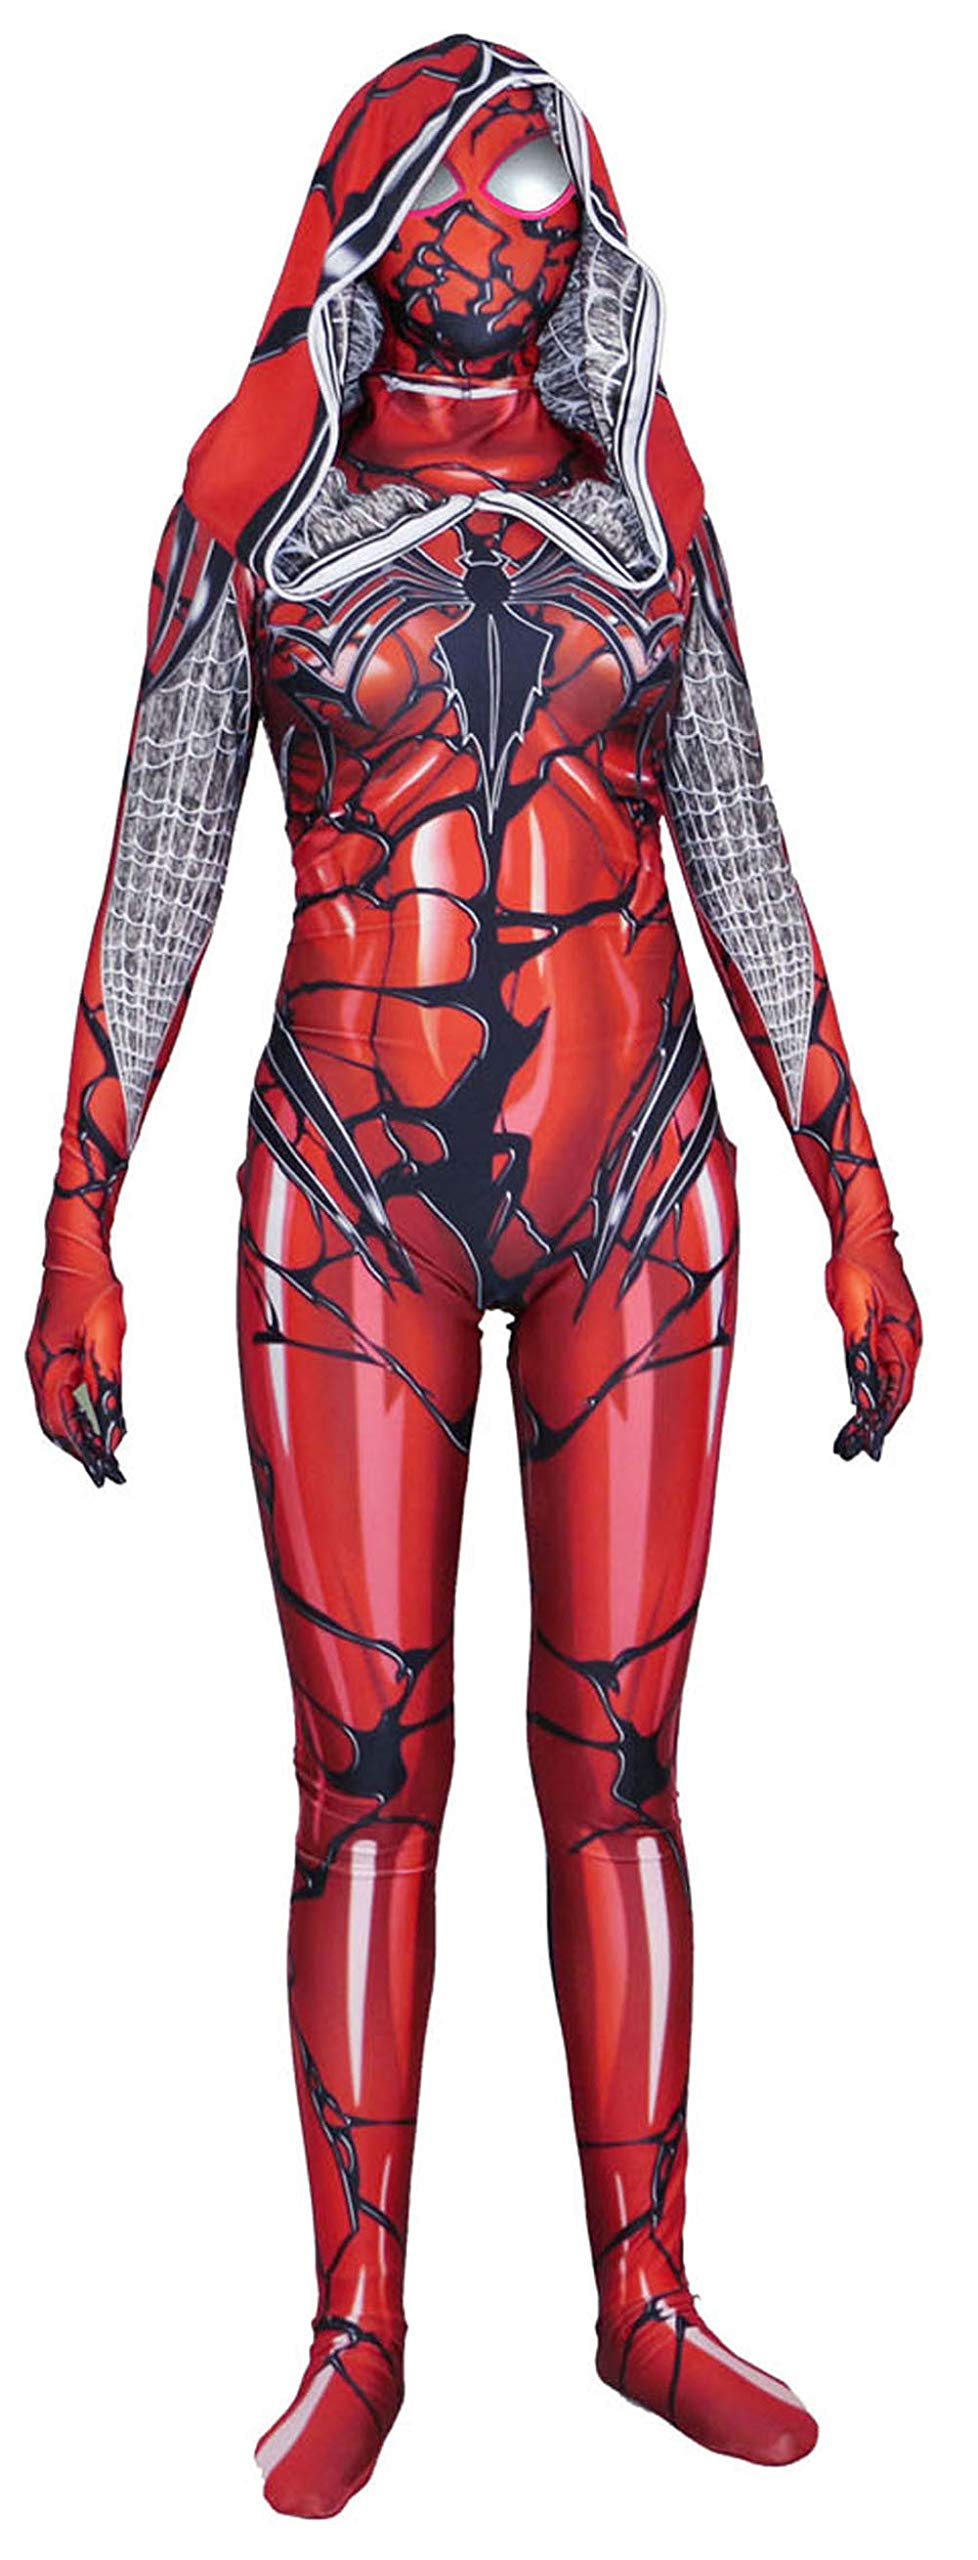 - 71Xn8FC IuL - Riekinc Womens Superhero Zentai Suits Halloween Cosplay Costumes 3D Style Audlt/Kids